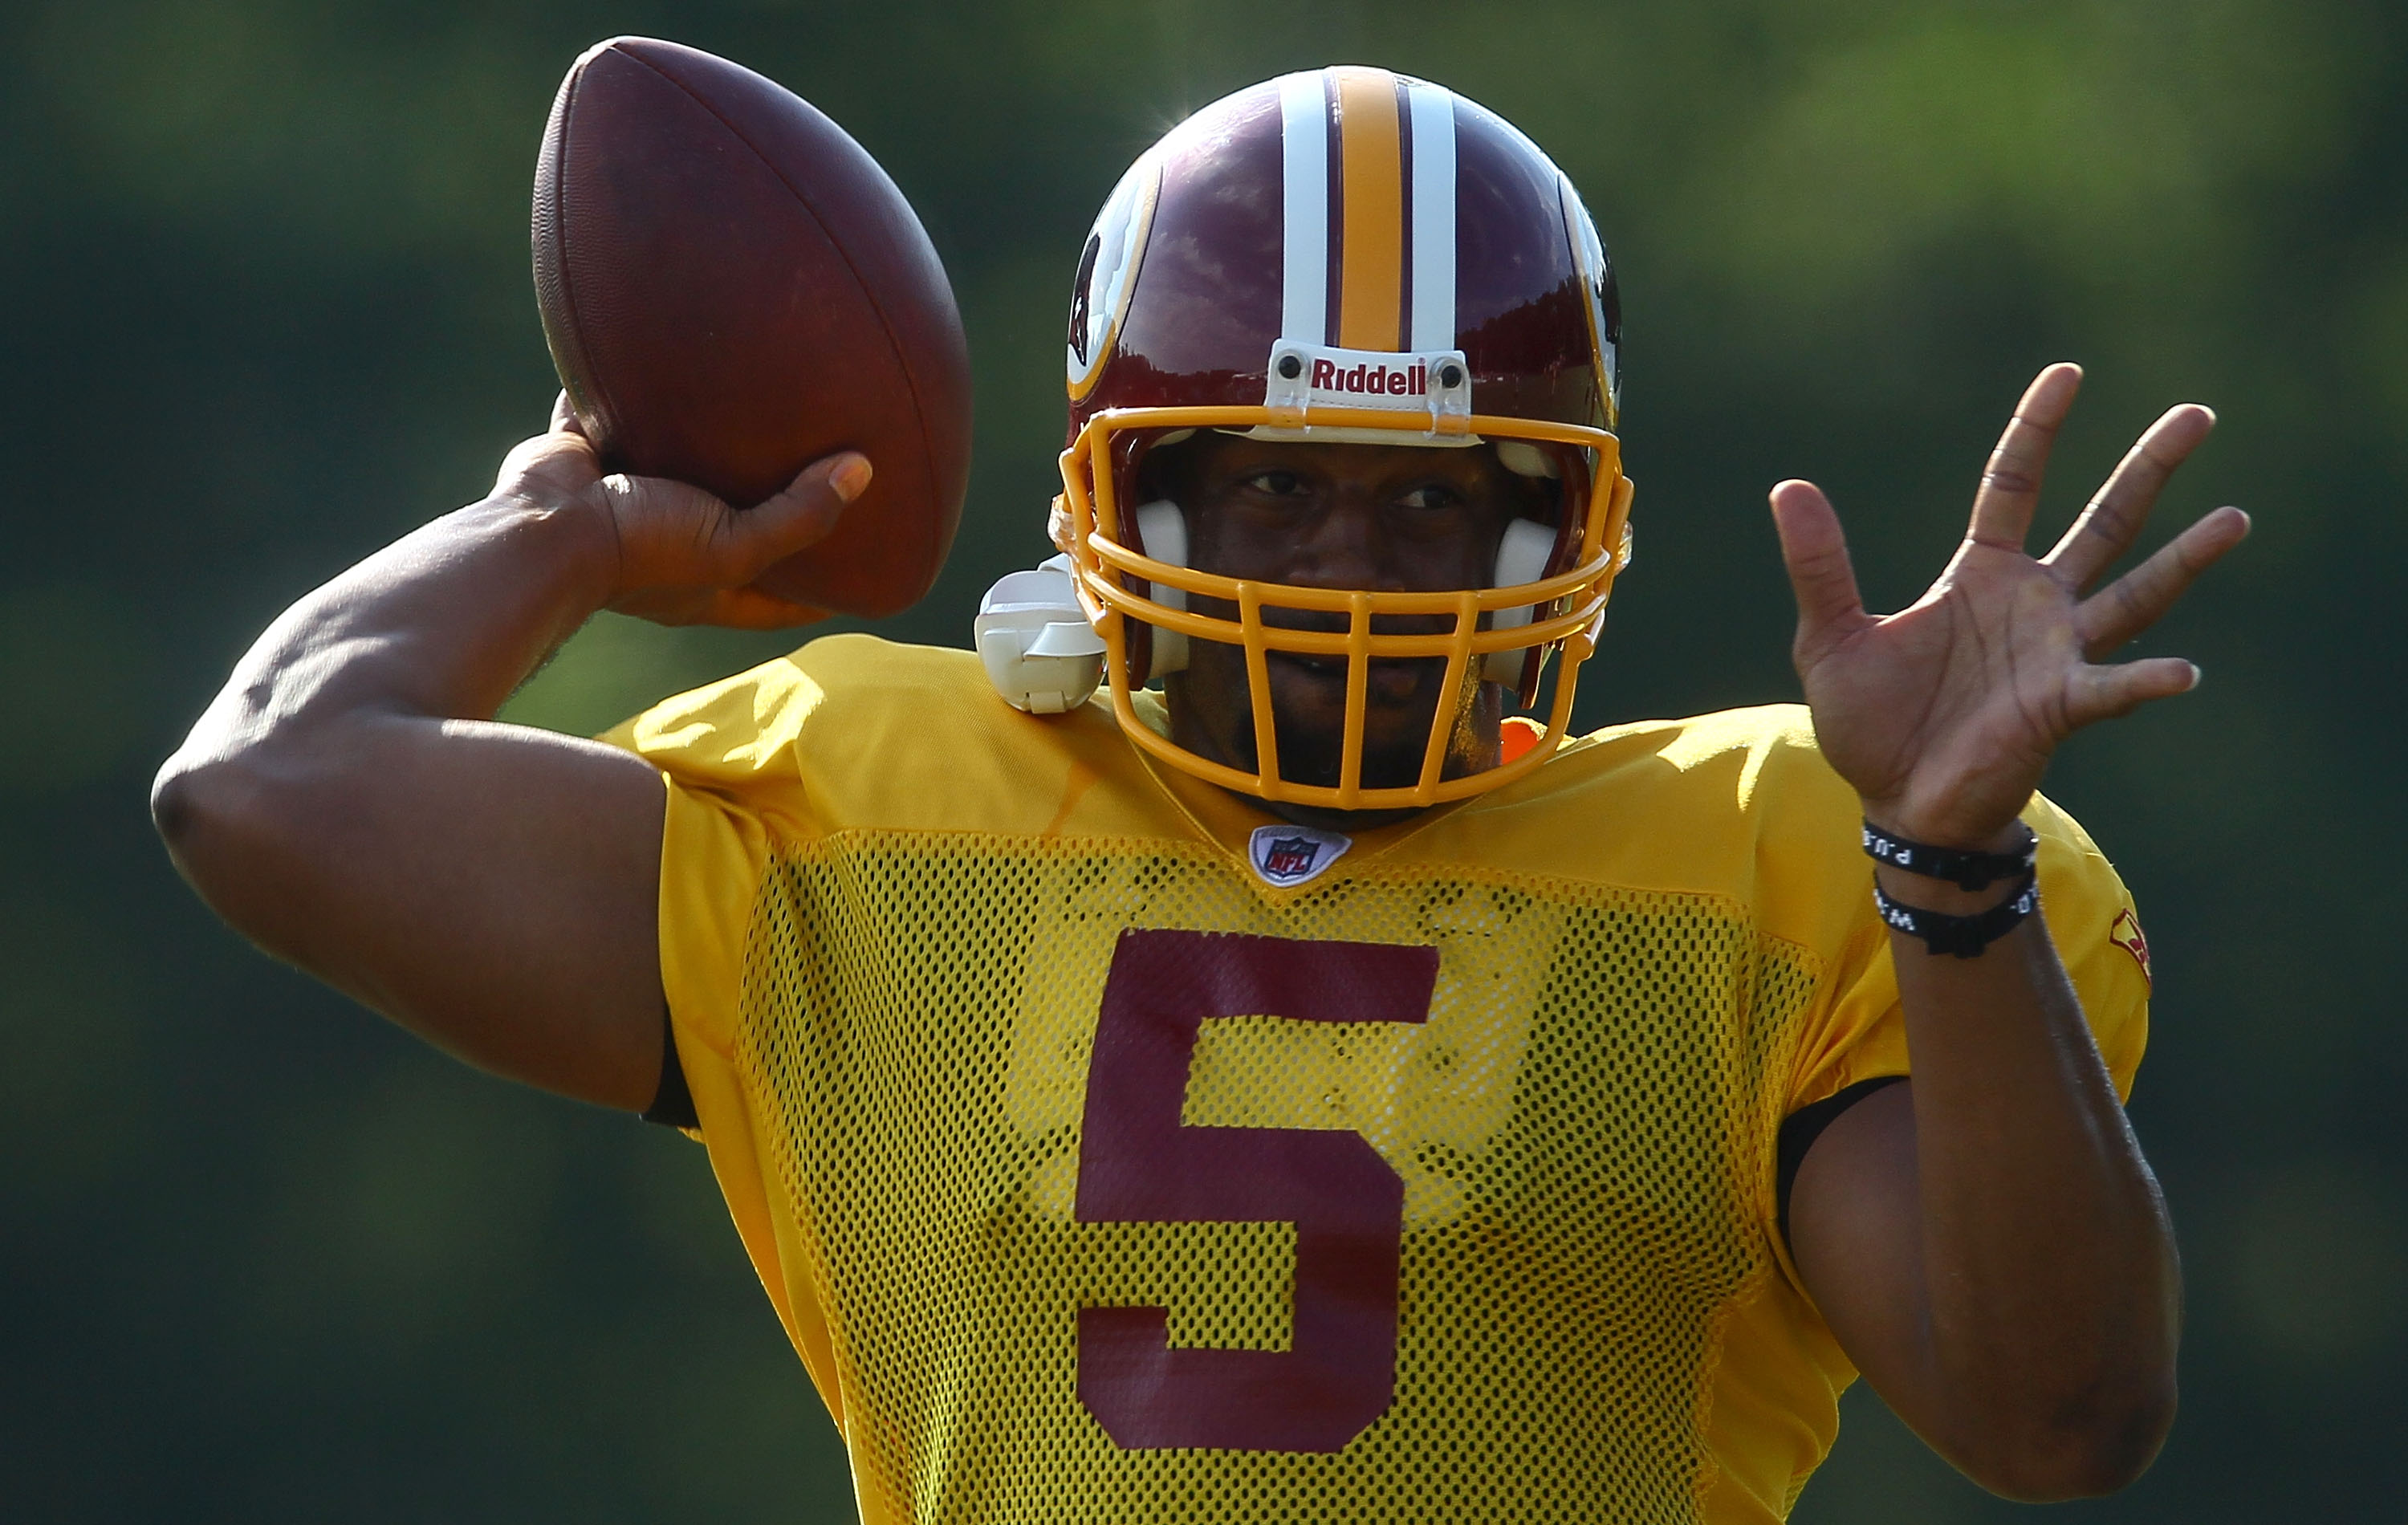 ASHBURN, VA - JULY 30:  Quarterback Donovan McNabb #5 of the Washington Redskins throws a pass during the second day of training camp July 30, 2010 in Ashburn, Virginia.  (Photo by Win McNamee/Getty Images)